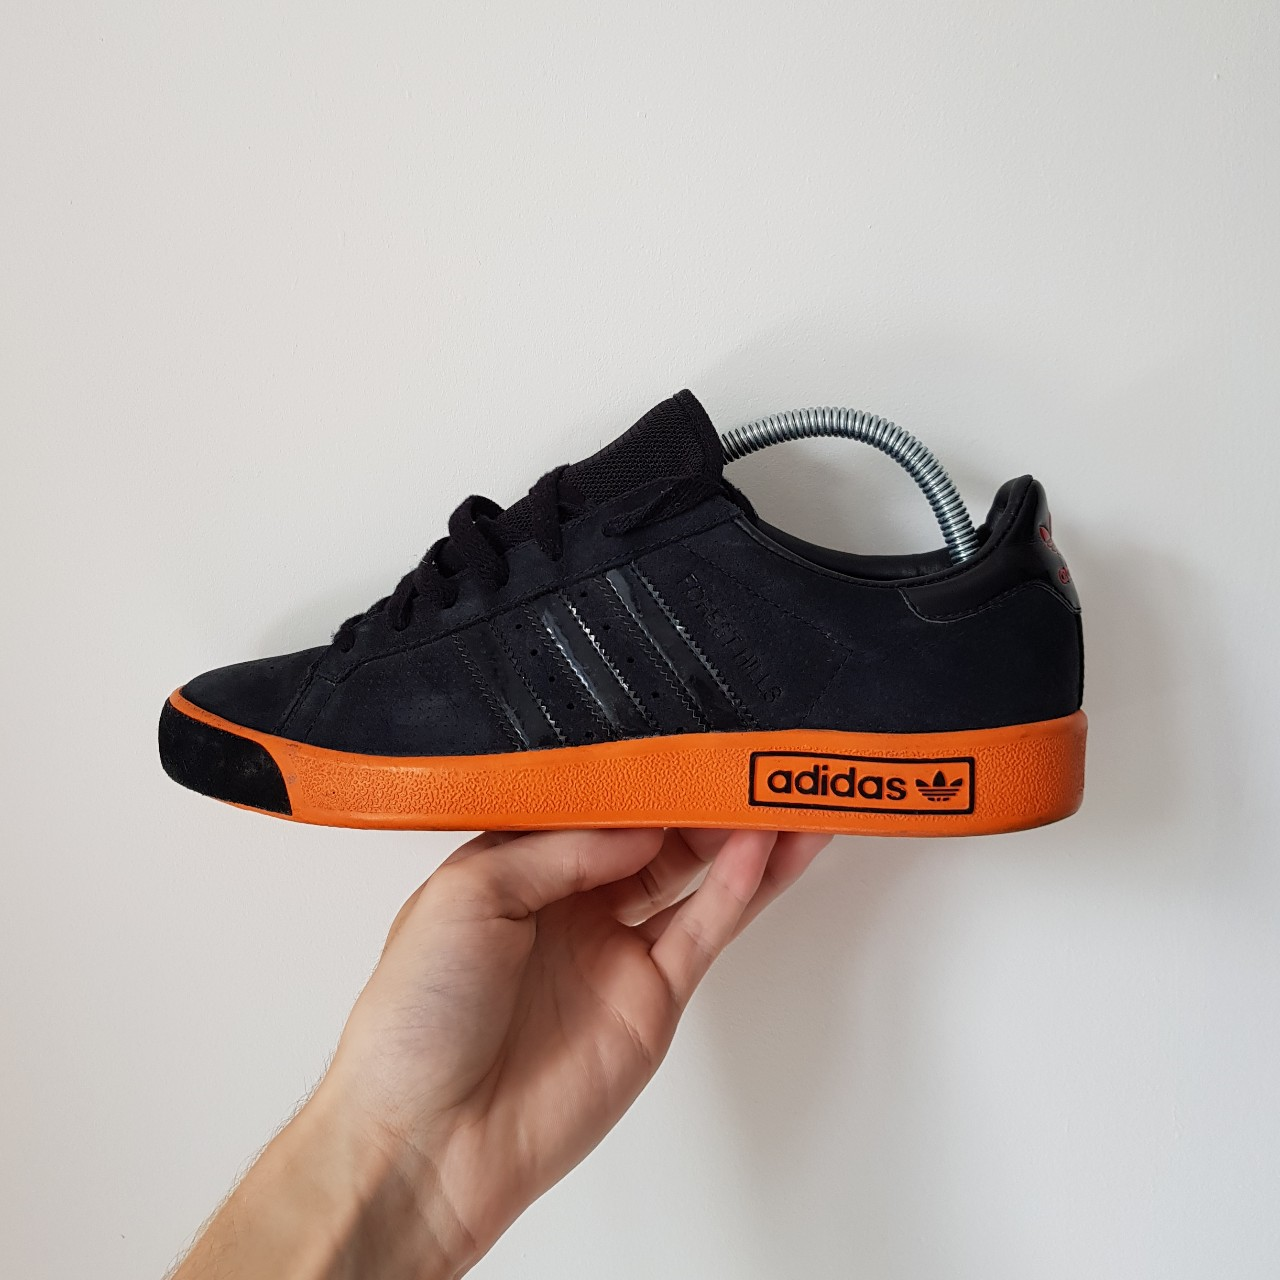 Adidas Forest Hills Trainers black and